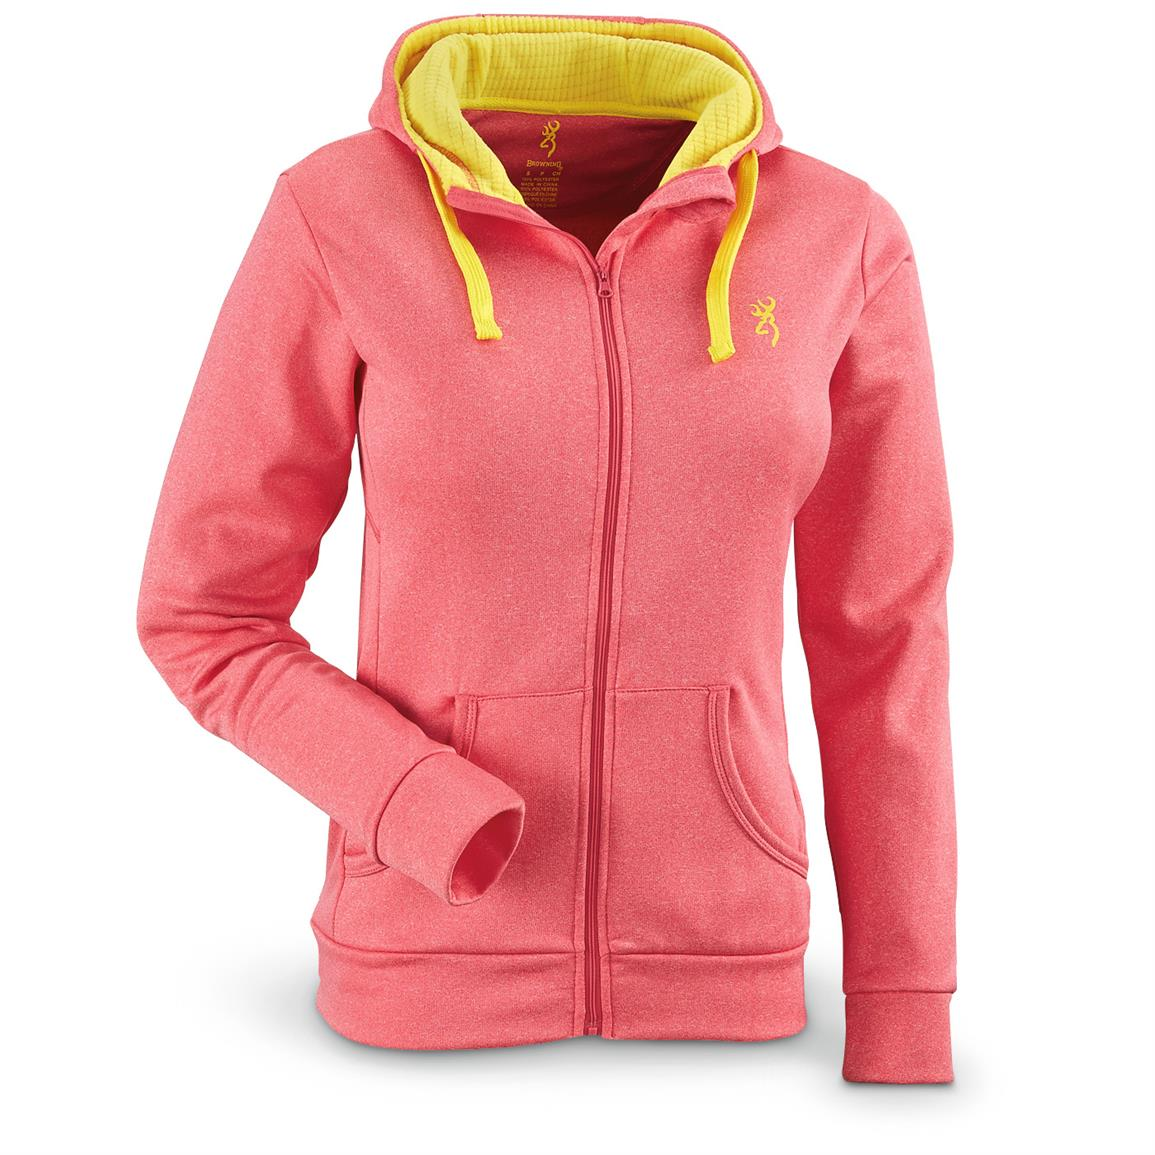 Browning Women's Performance Full Zip Hoodie, Fuchsia